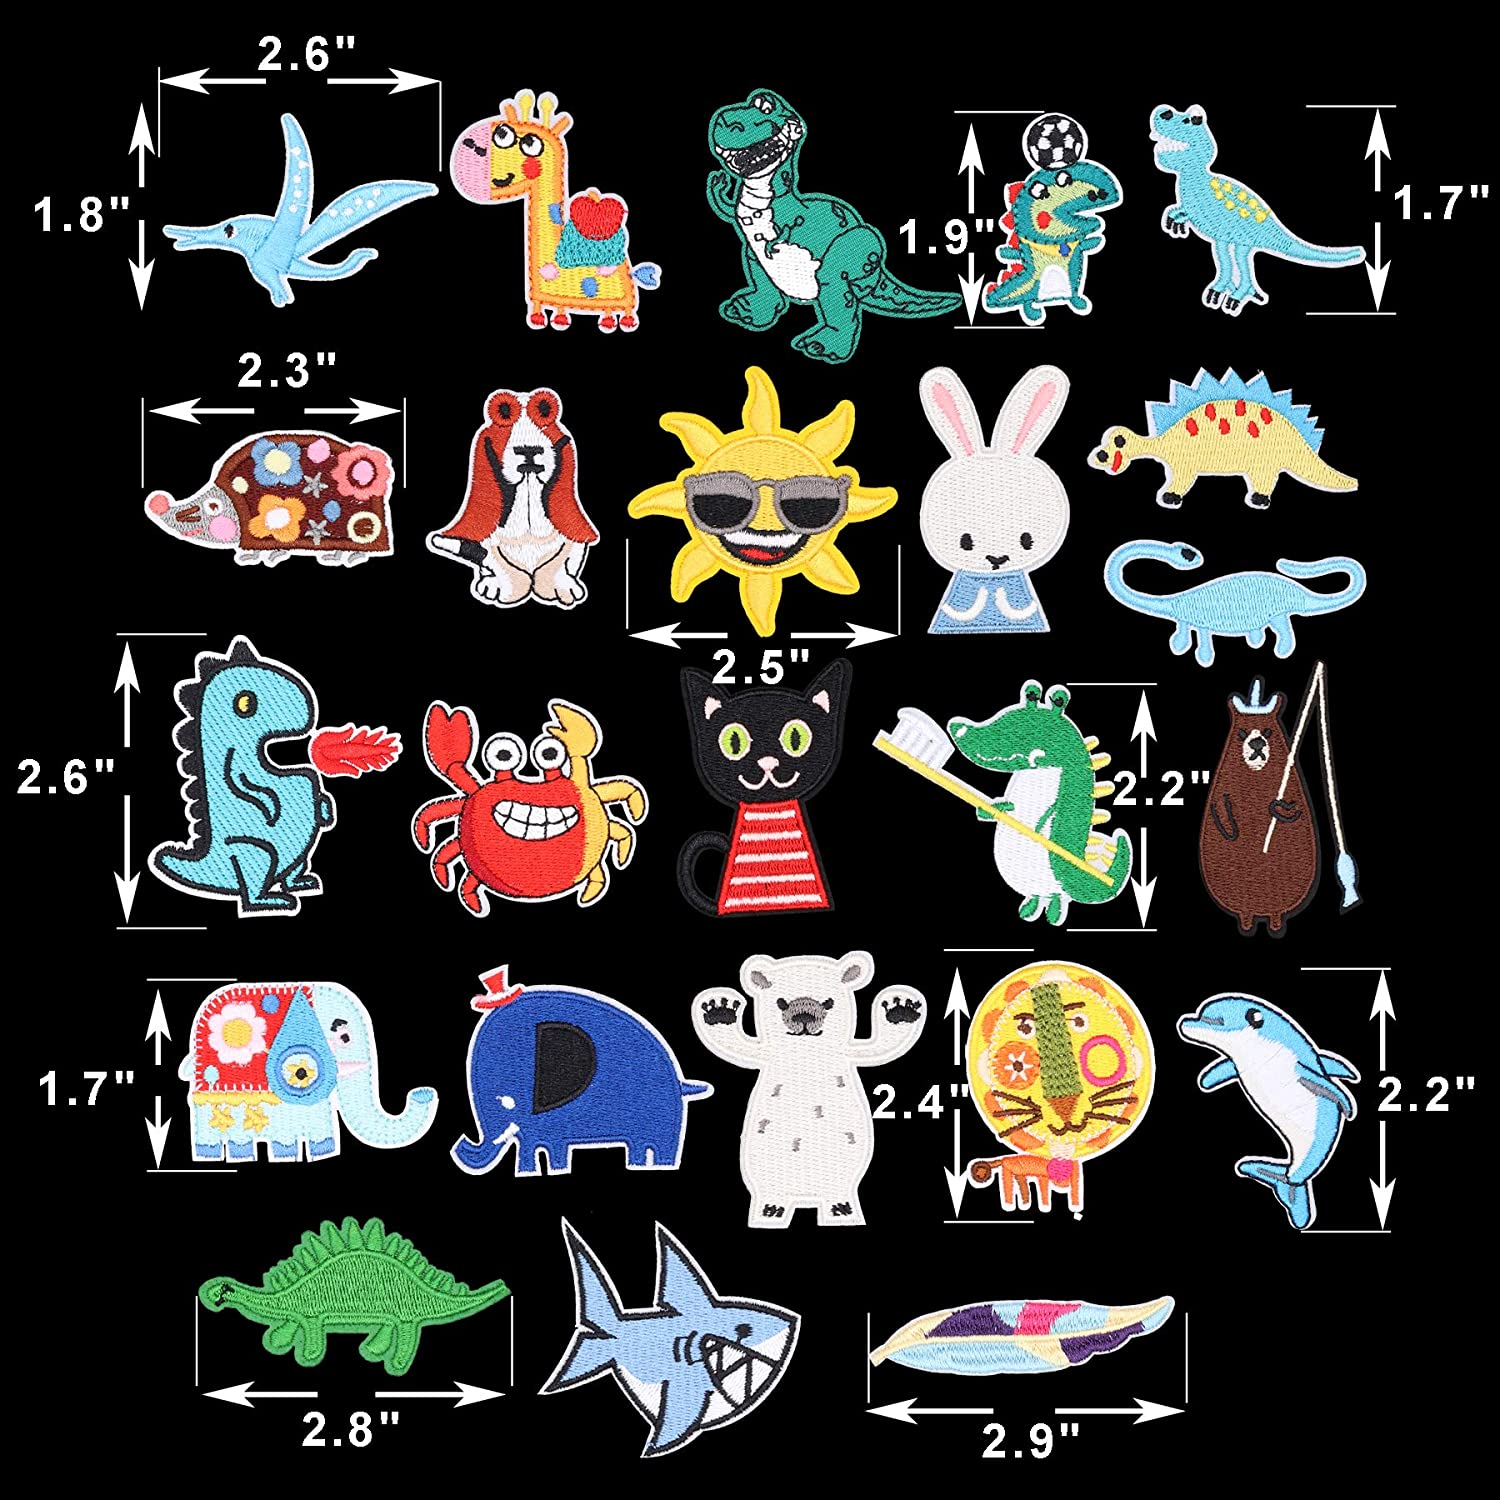 17pcs Cat and Fish Iron On Patches Embroidered Motif Applique Assorted Size Decoration Sew On Patches Custom Patches for DIY Jeans,Jacket,Kids Clothing,Bag,Caps Arts Craft Sew Making Kitten 17pcs